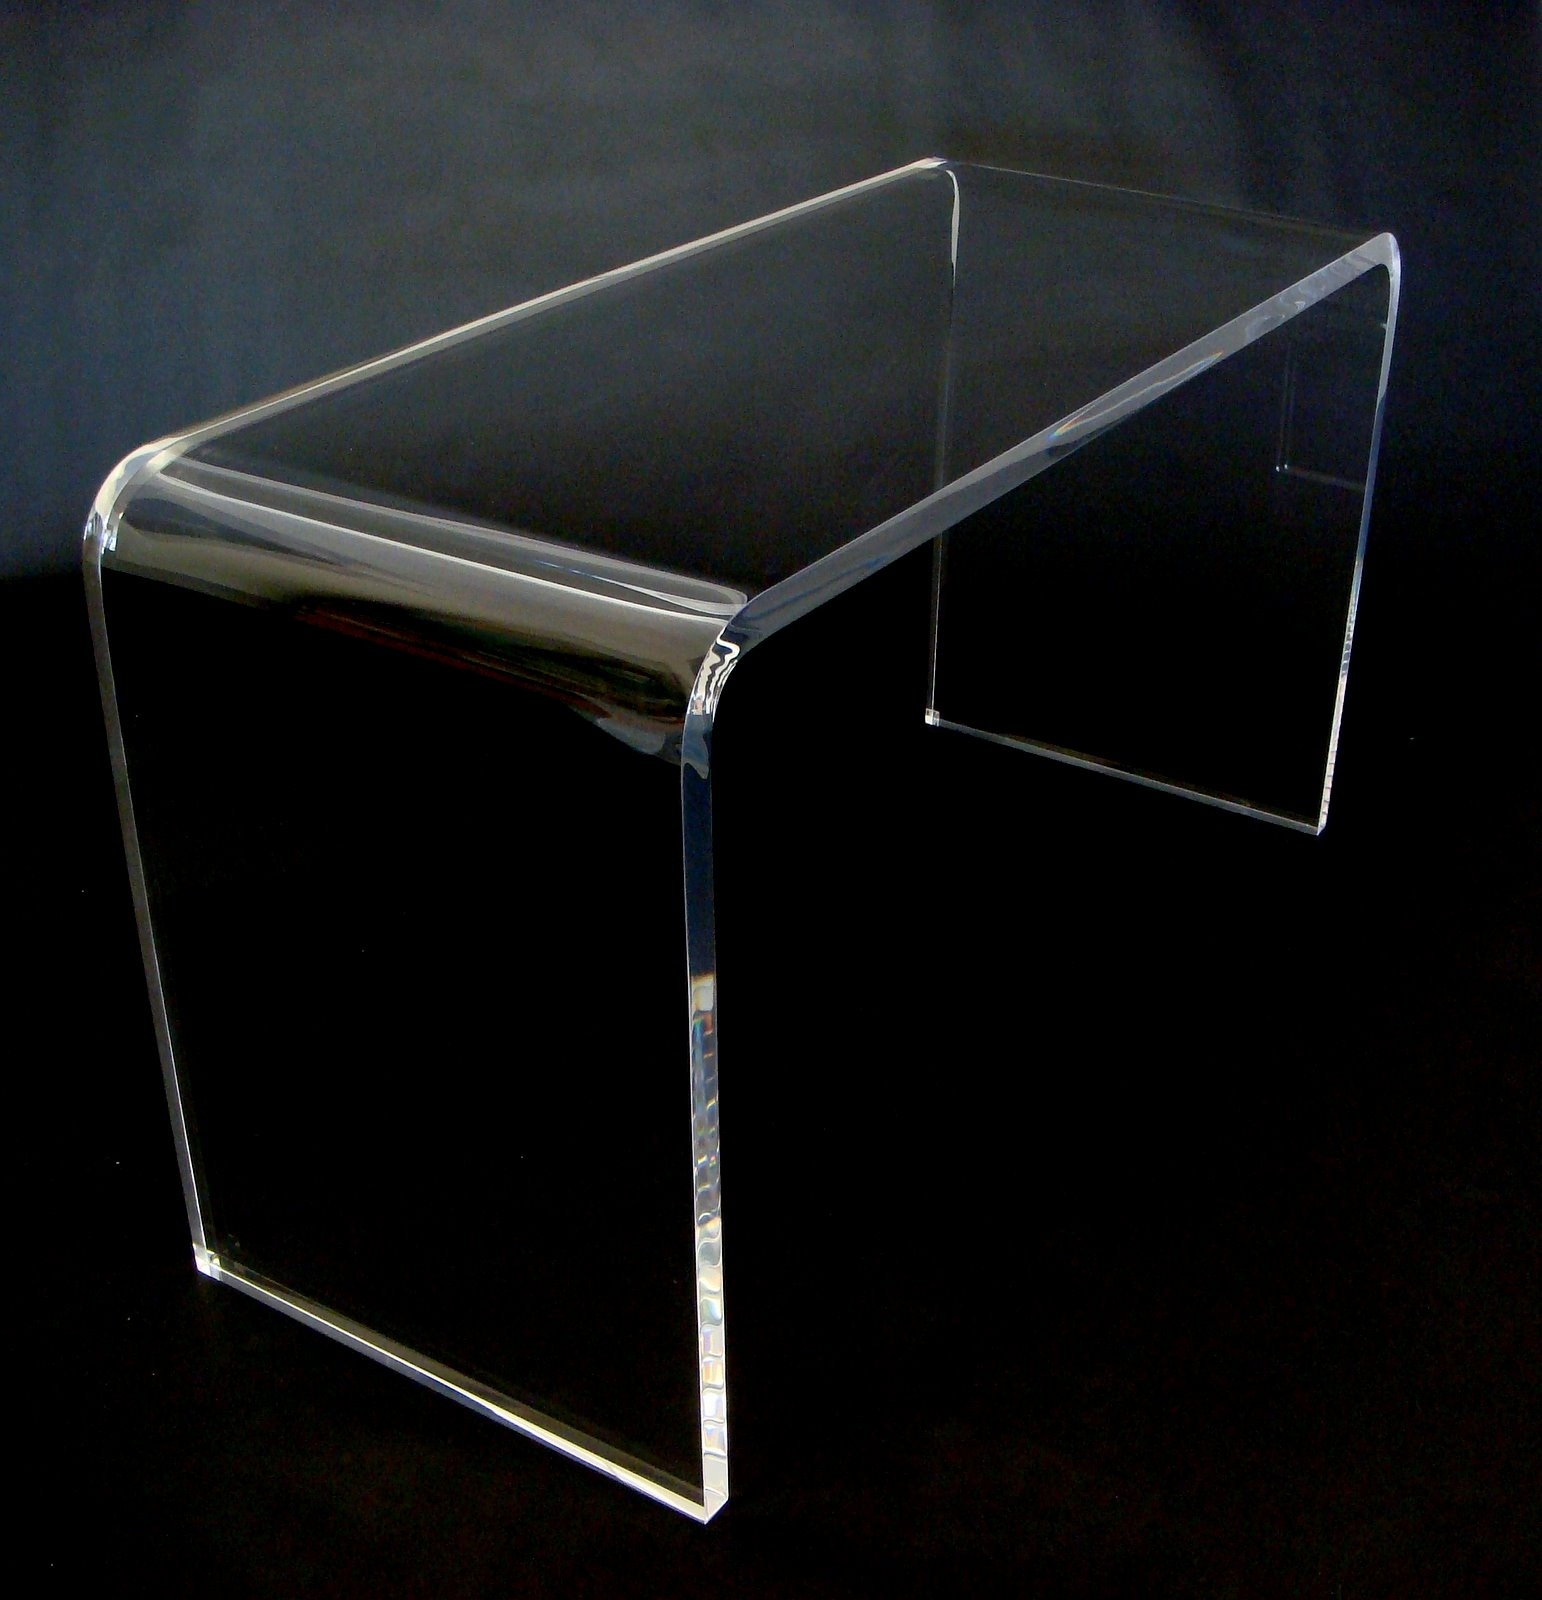 Small Glass Waterfall Coffee Table Acrylic Table Square Waterfall inside Square Waterfall Coffee Tables (Image 19 of 30)